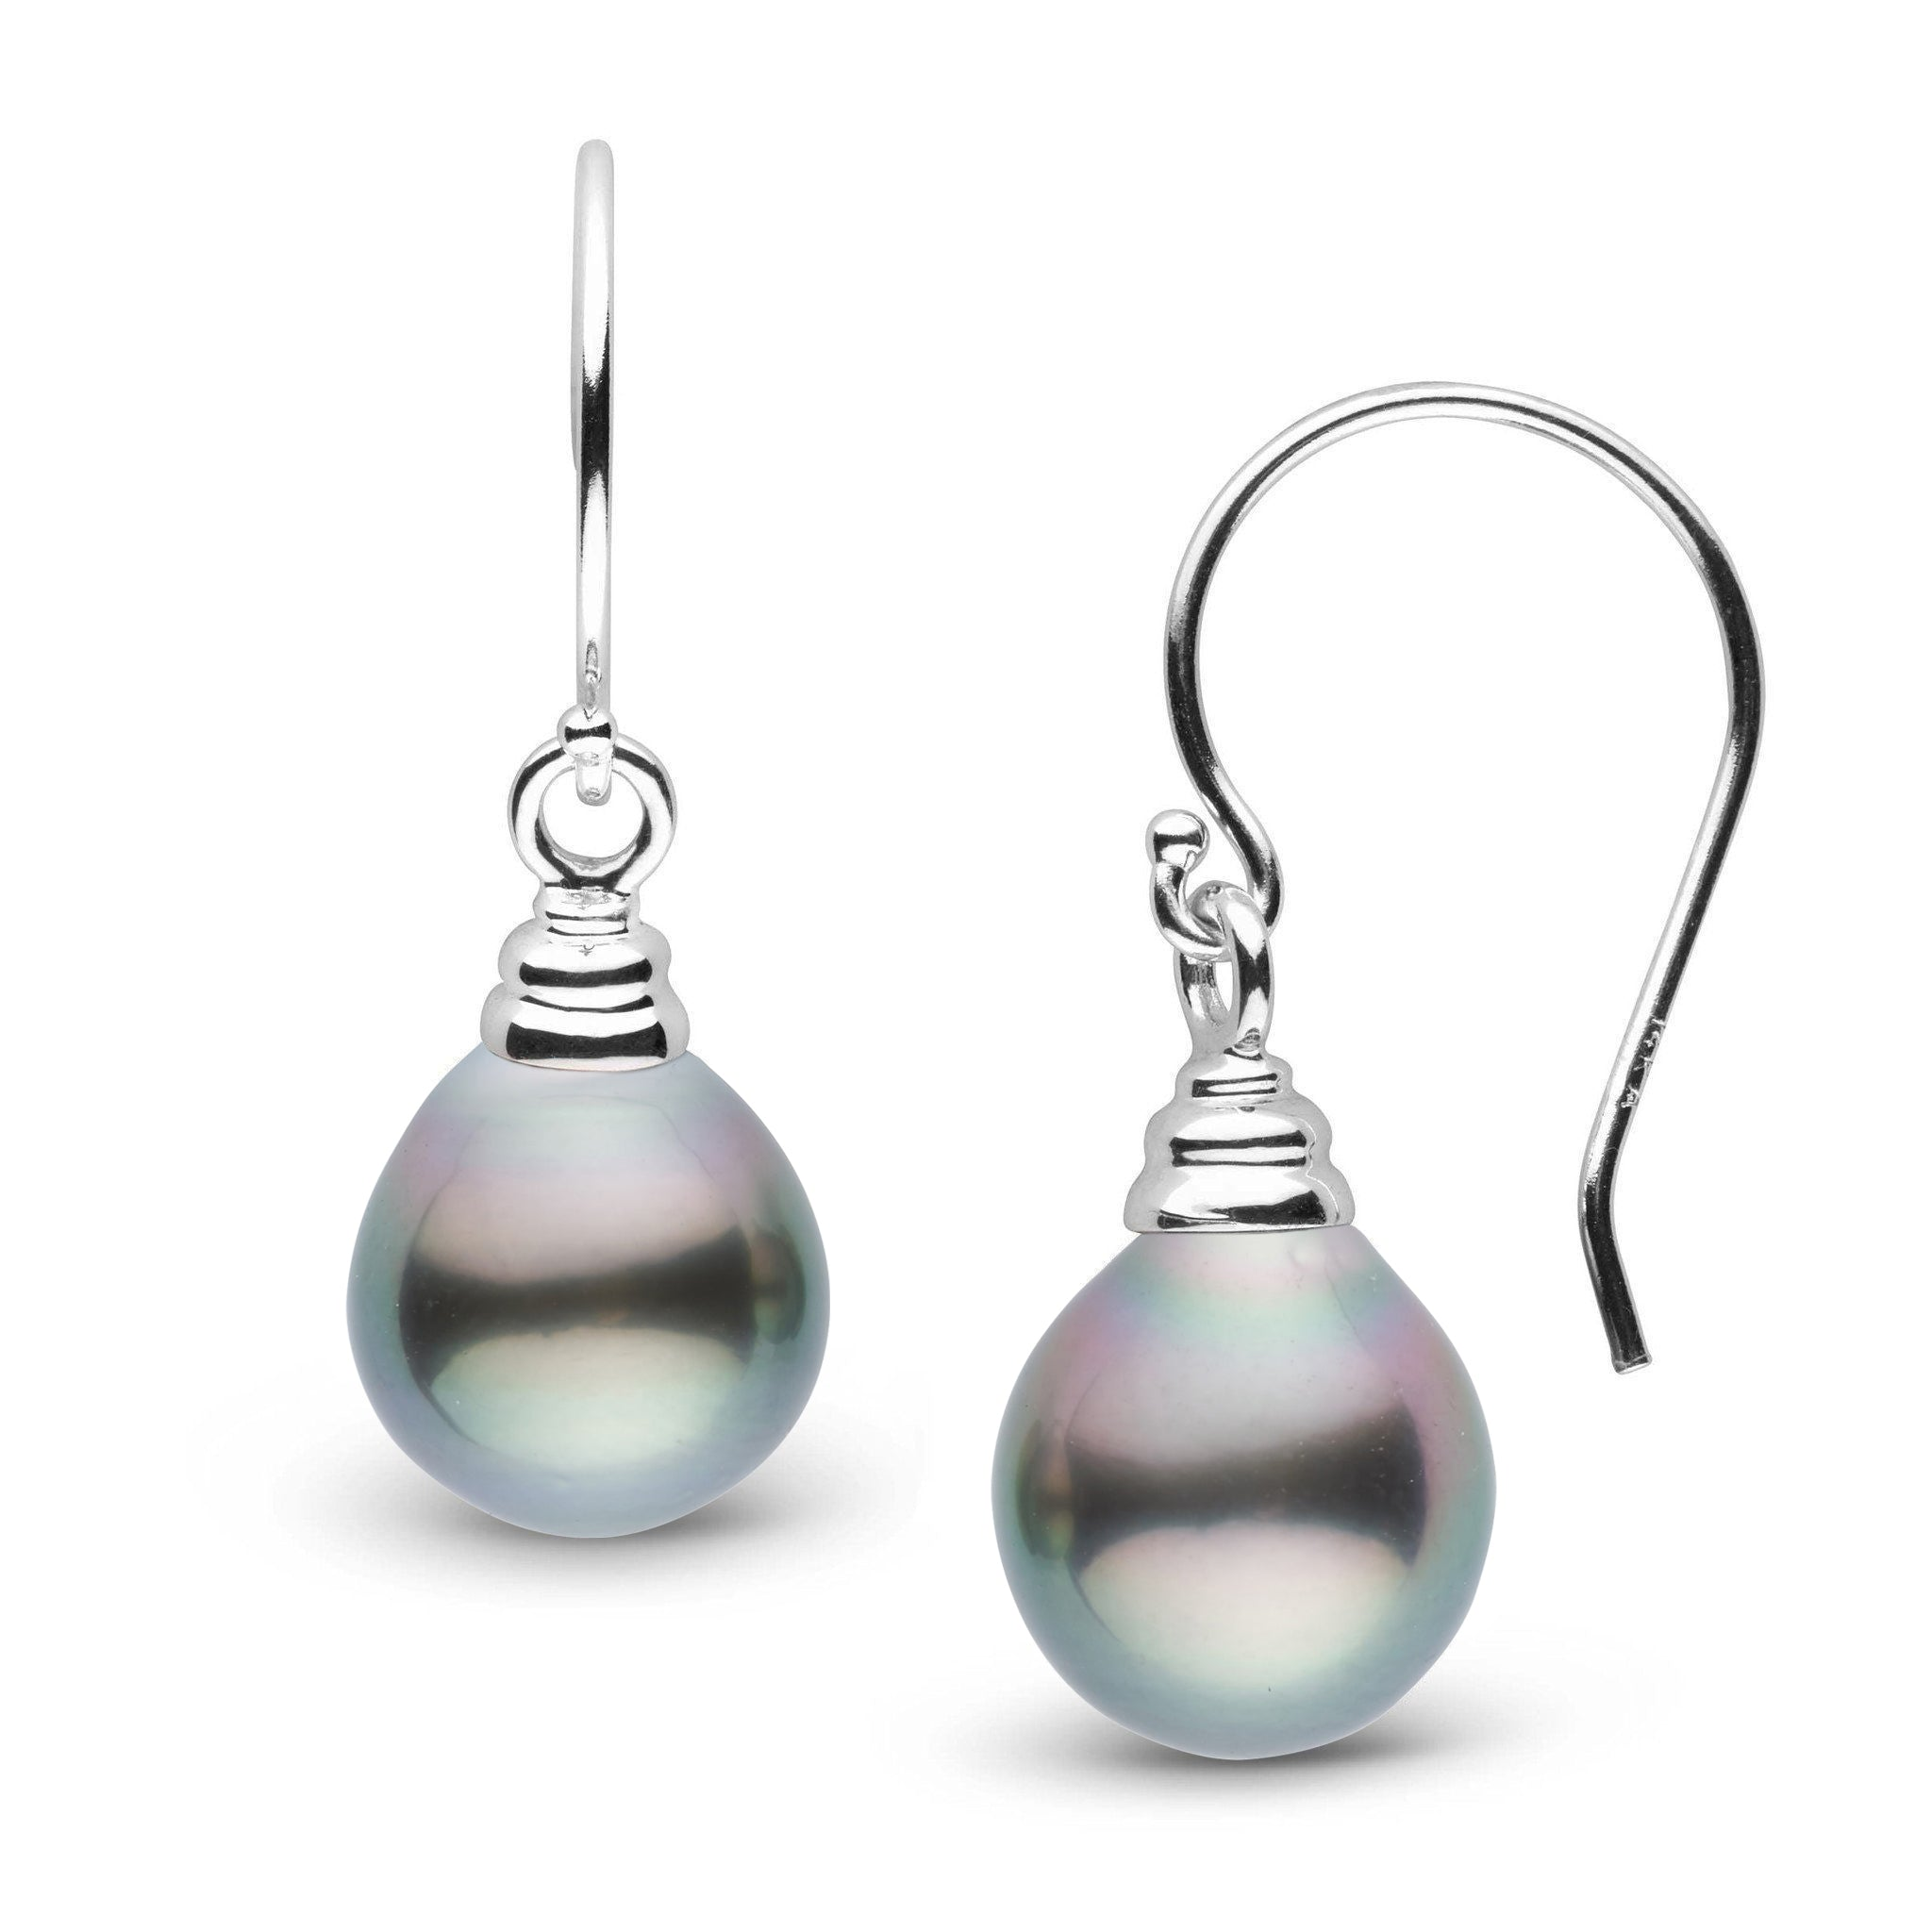 Honey Collection Tahitian Drop 9.0-10.0 mm Pearl Earrings